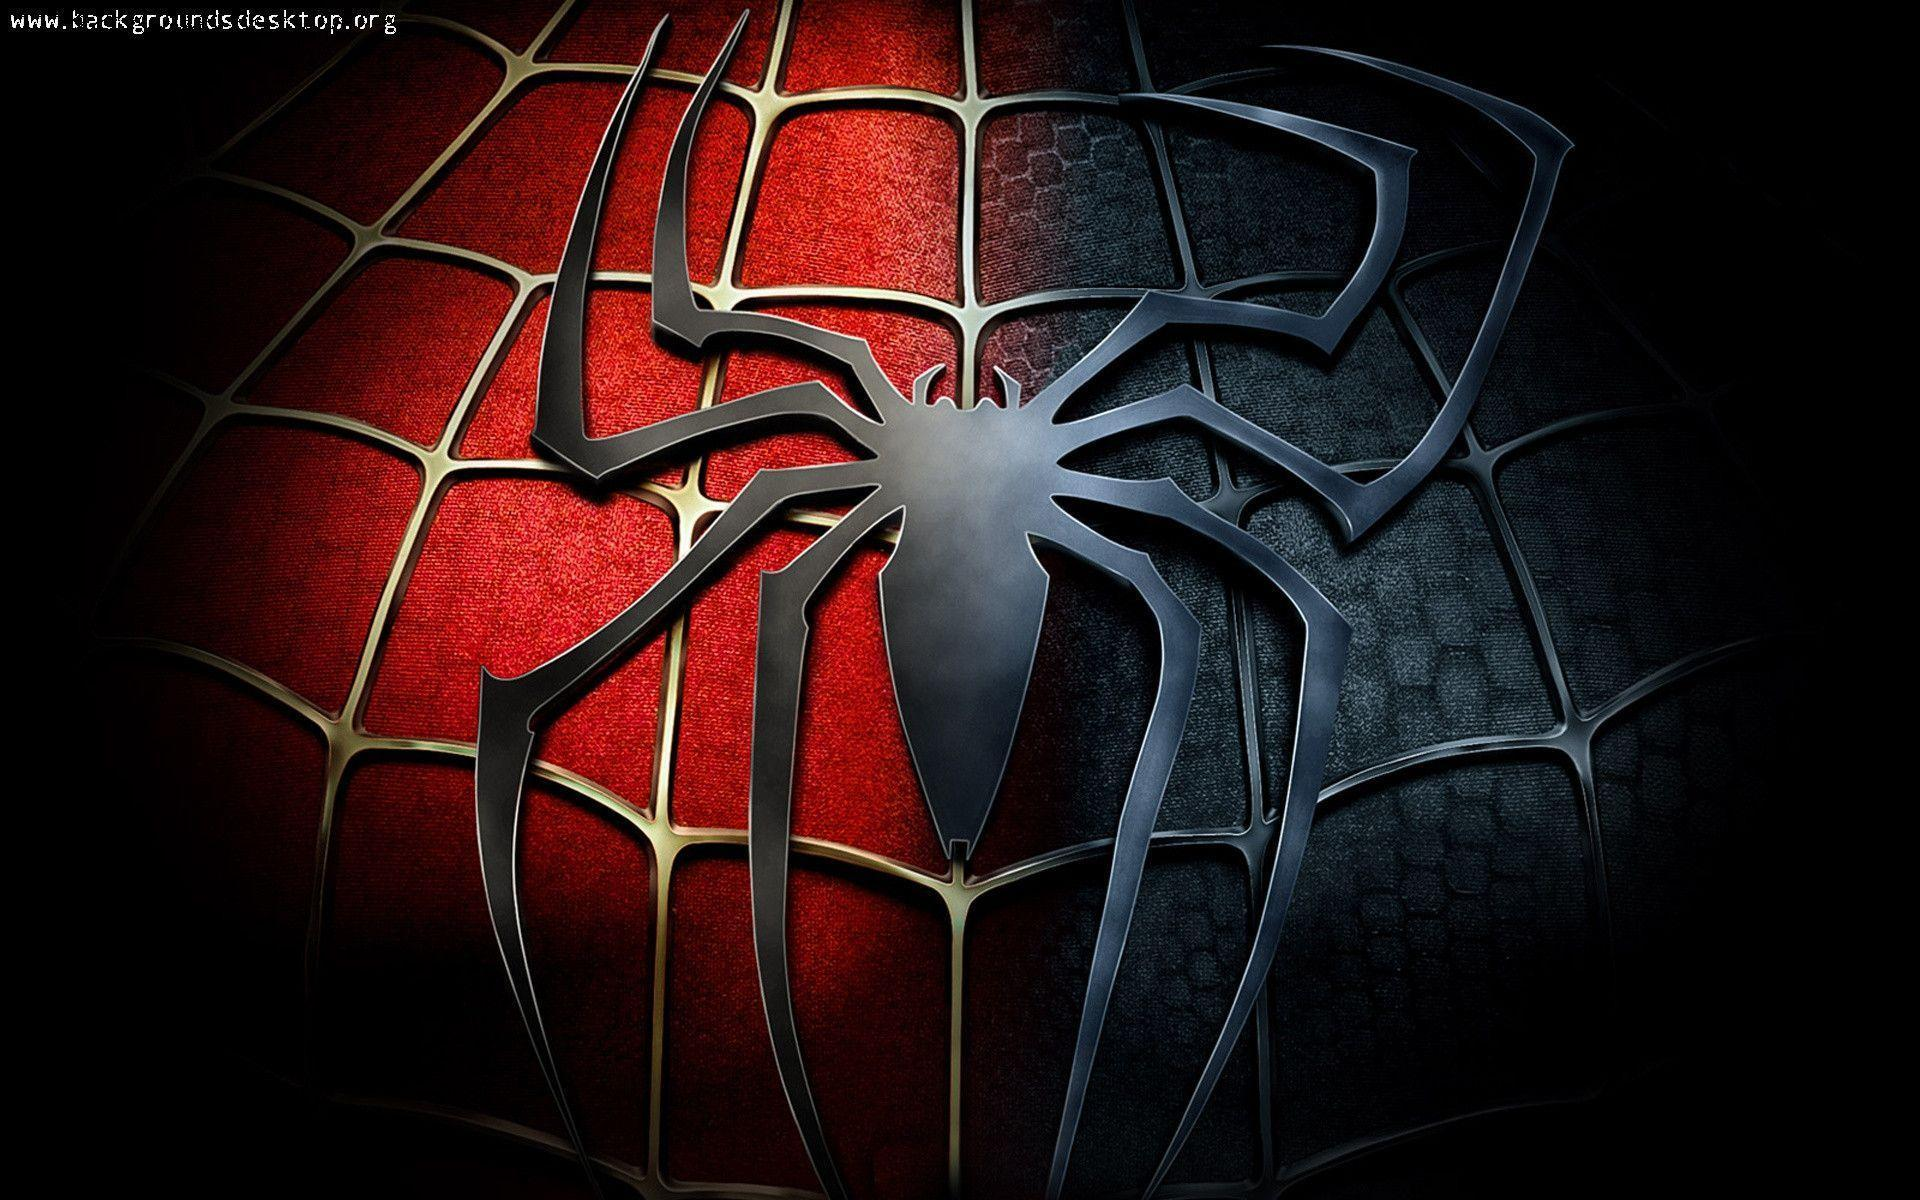 Spiderman Wallpapers Logo Download Movei Spiderman Wallpapers